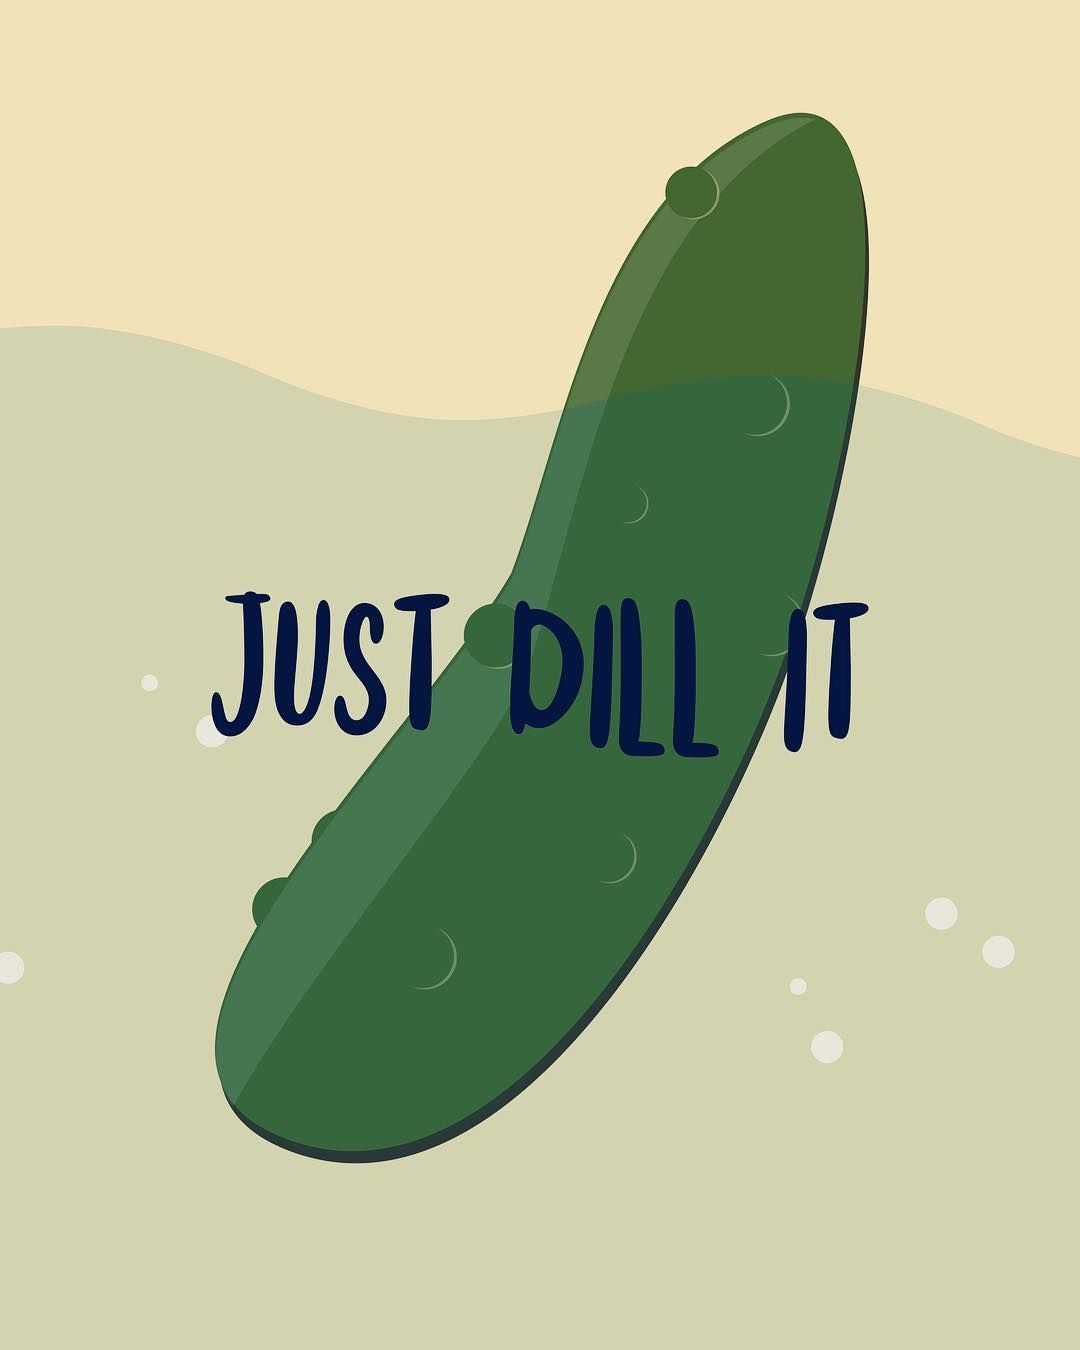 transparent download Pickle vector. Pin by tad on